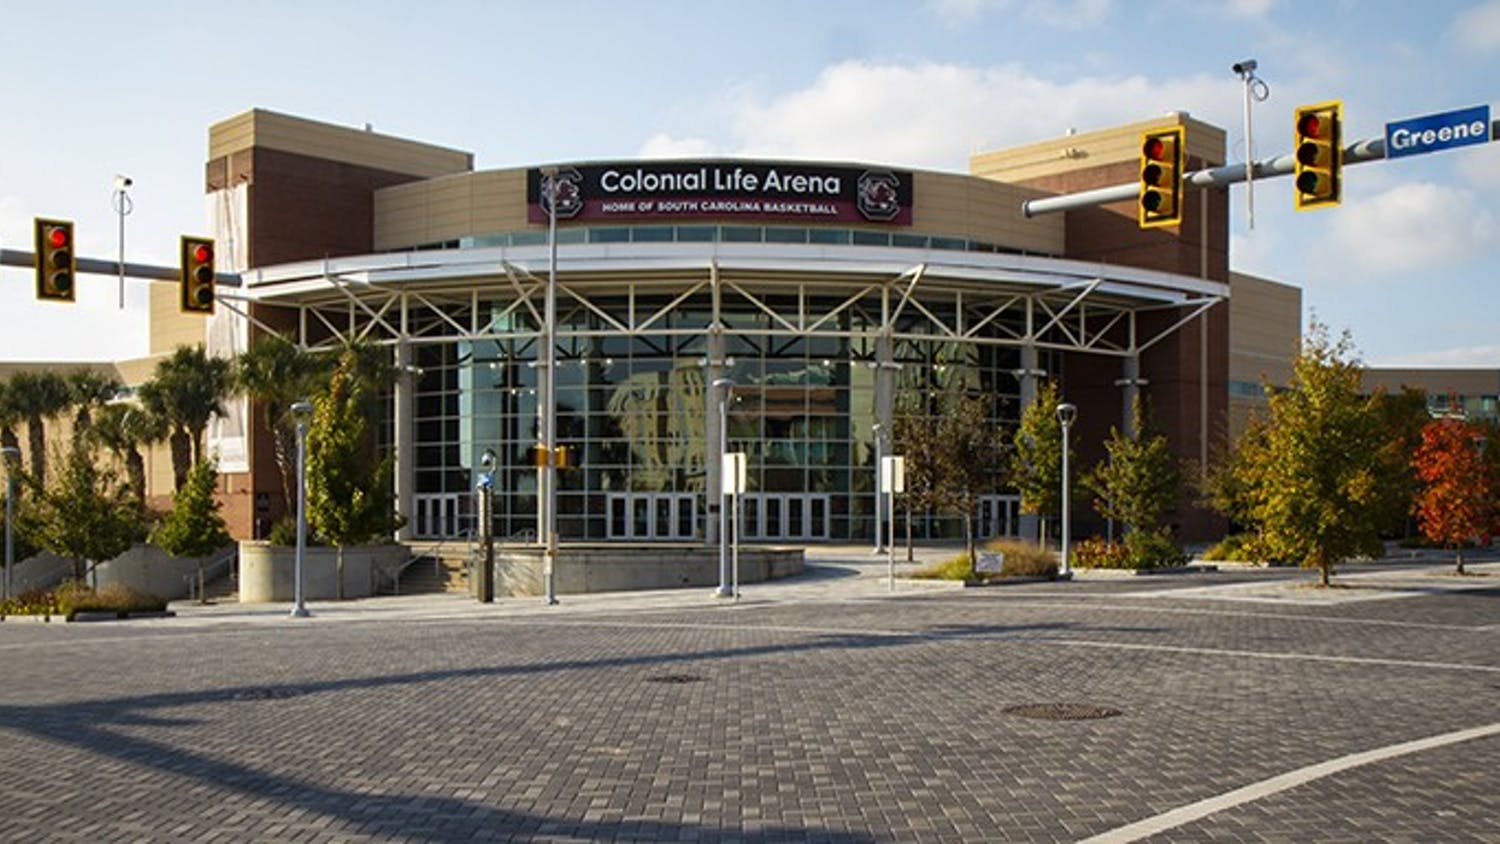 Colonial Life Arena is home to the University of South Carolina men's and women's basketball teams. During the 2020 season, fans will be allowed within the arena at a lower capacity to fit COVID-19 guidelines.